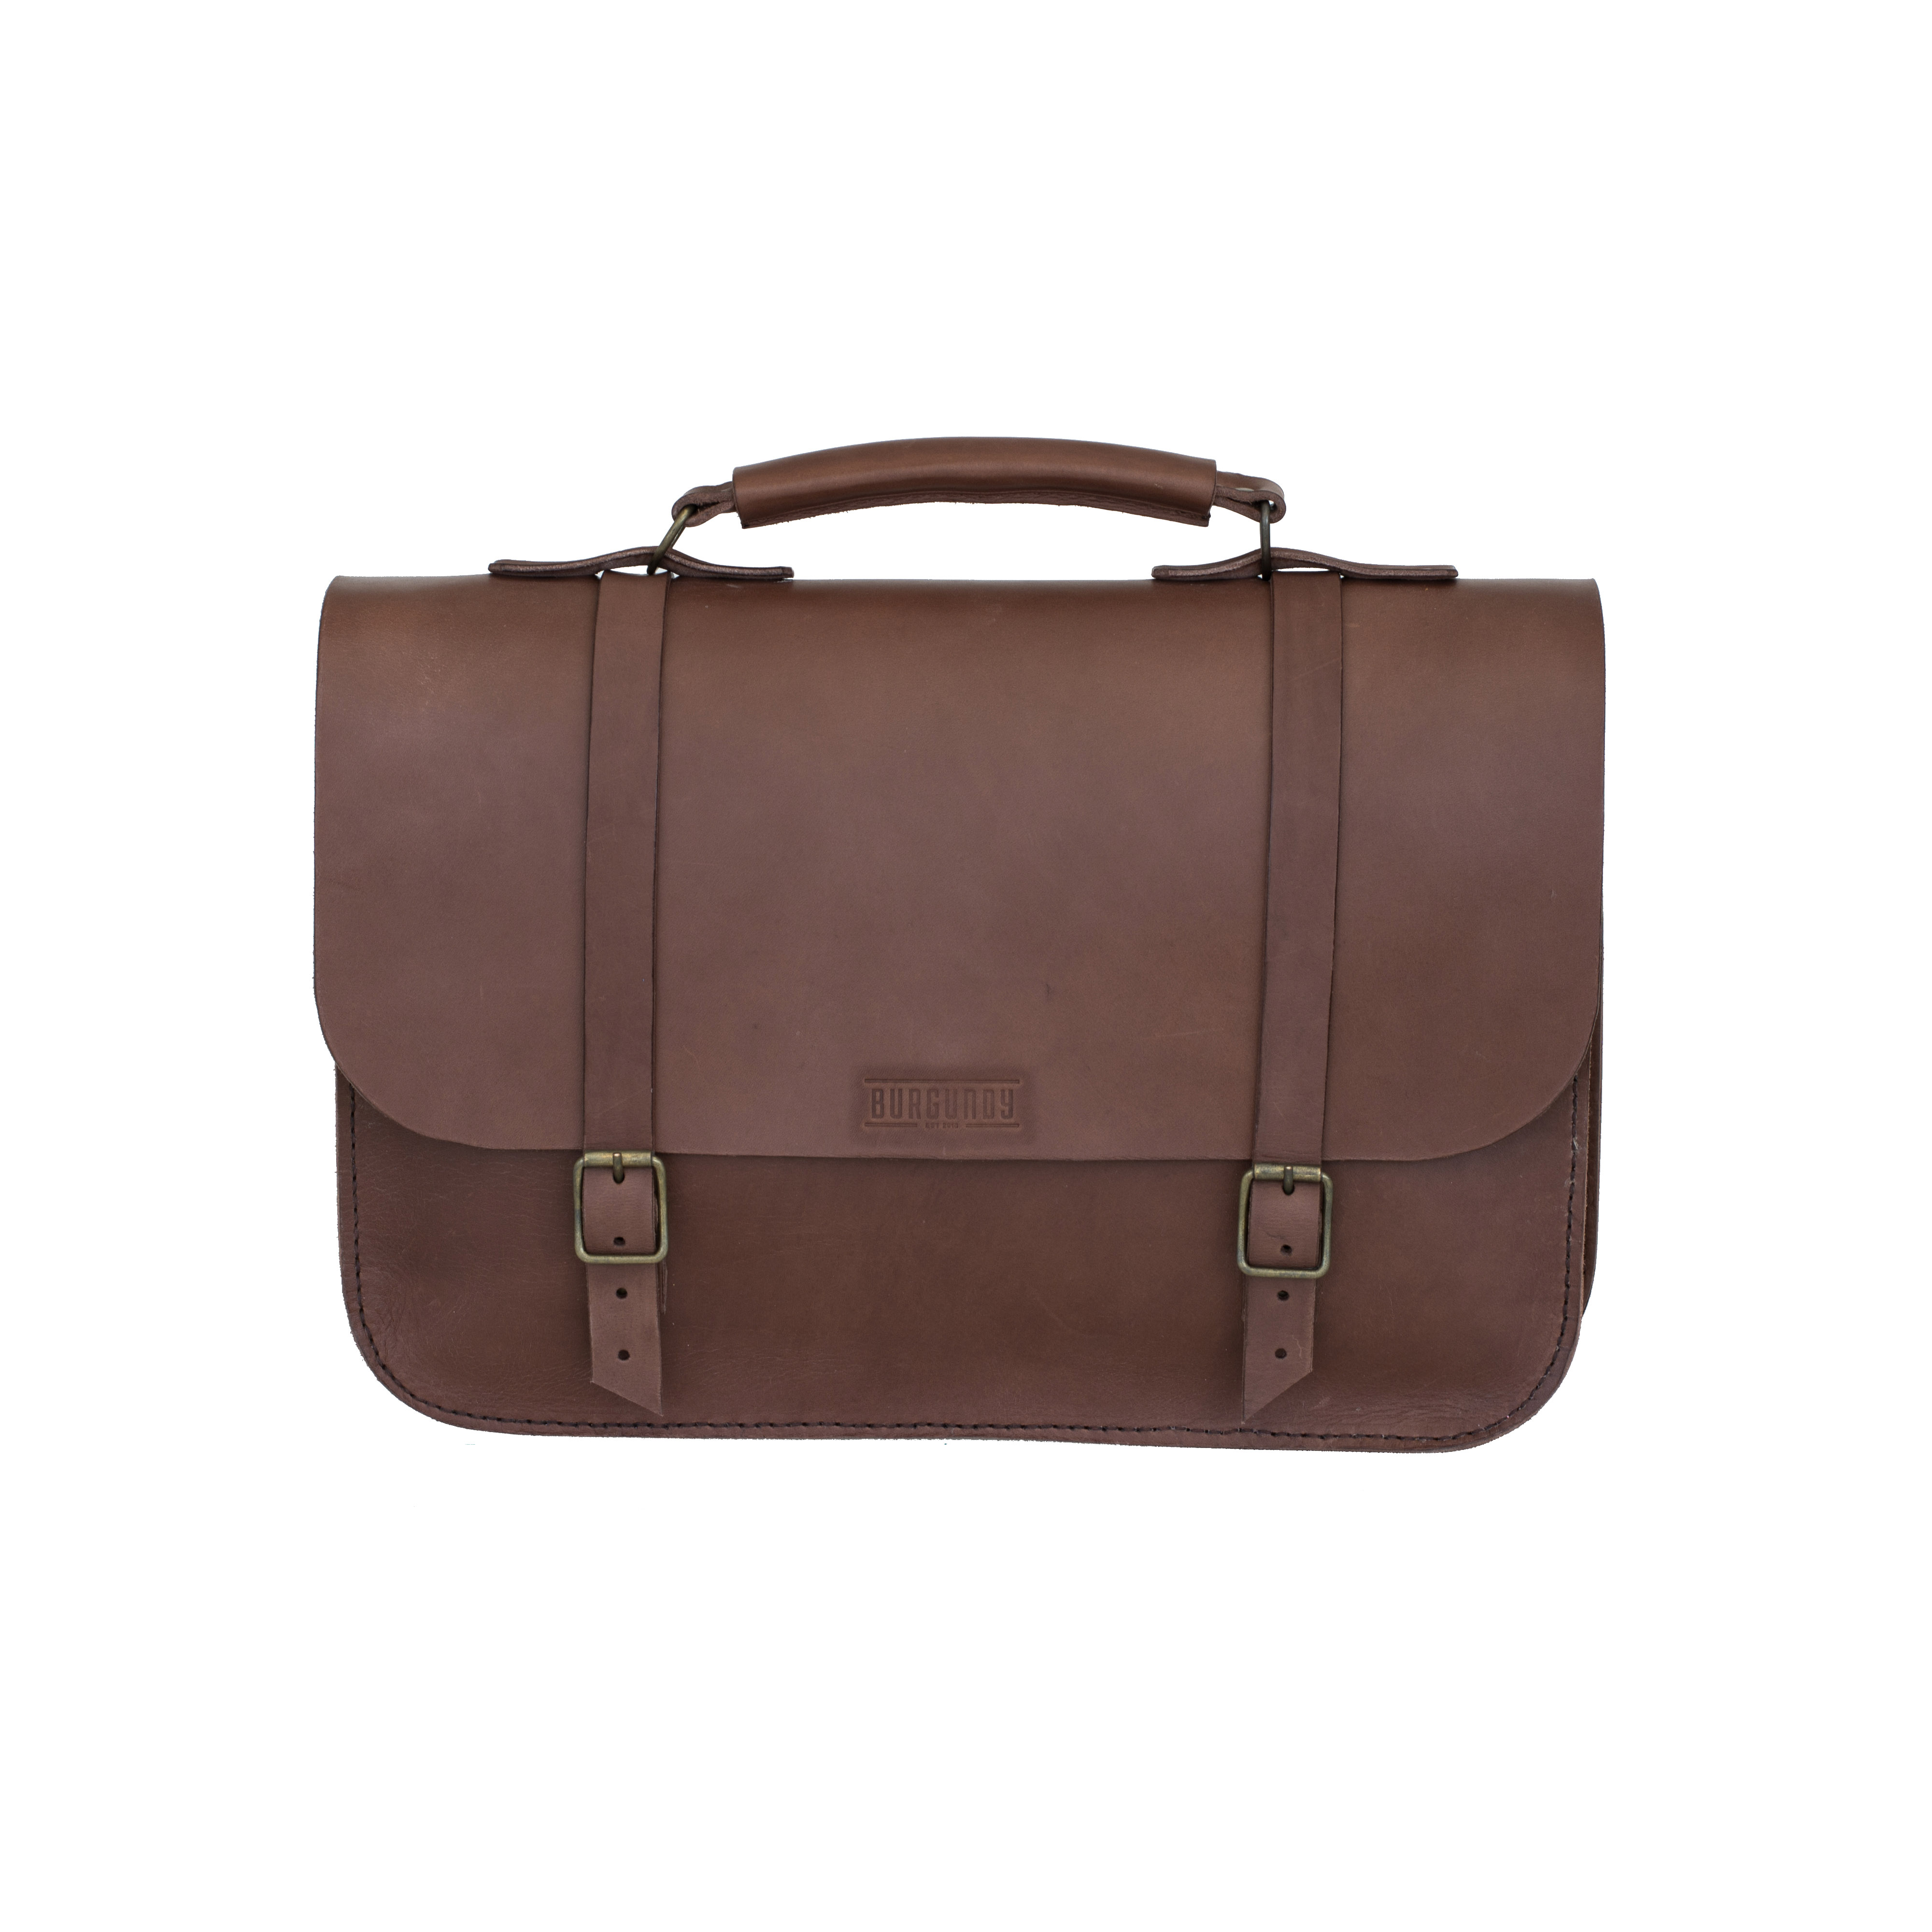 """Hand stitched from premium vegetable tanned leather. Perfect for the day-to-day business man. Well crafted and structured to carry all the business essentials and personal smalls.    FEATURES:   Fits 15"""" Laptop 2 x Interior compartments 1 x File pocket for pens & smalls     DIMENSIONS :  H 28cm x W 42cm x D 12cm"""